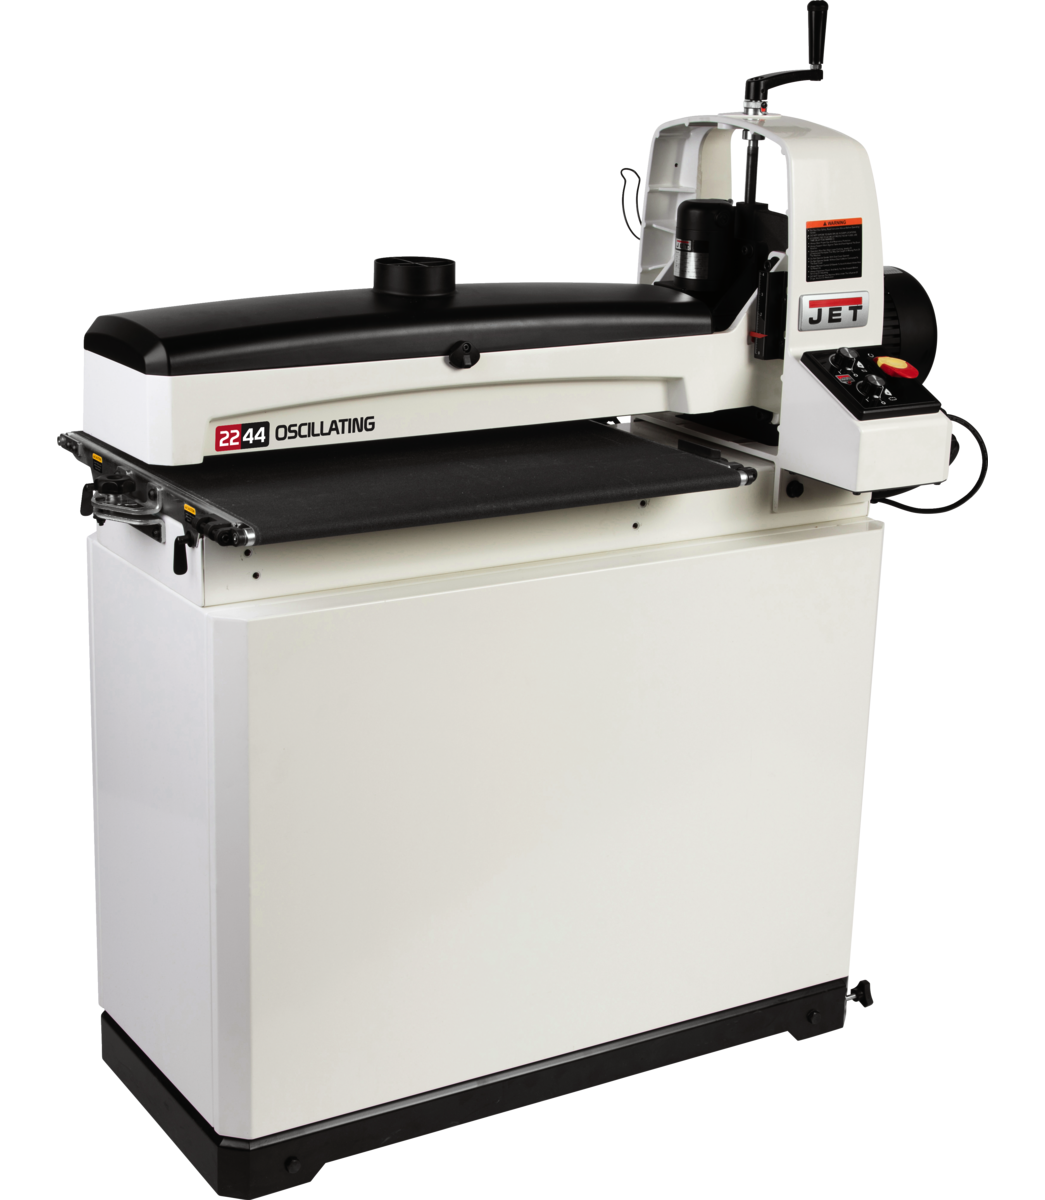 JWDS-2244OSC Oscillating Drum Sander With Closed Stand